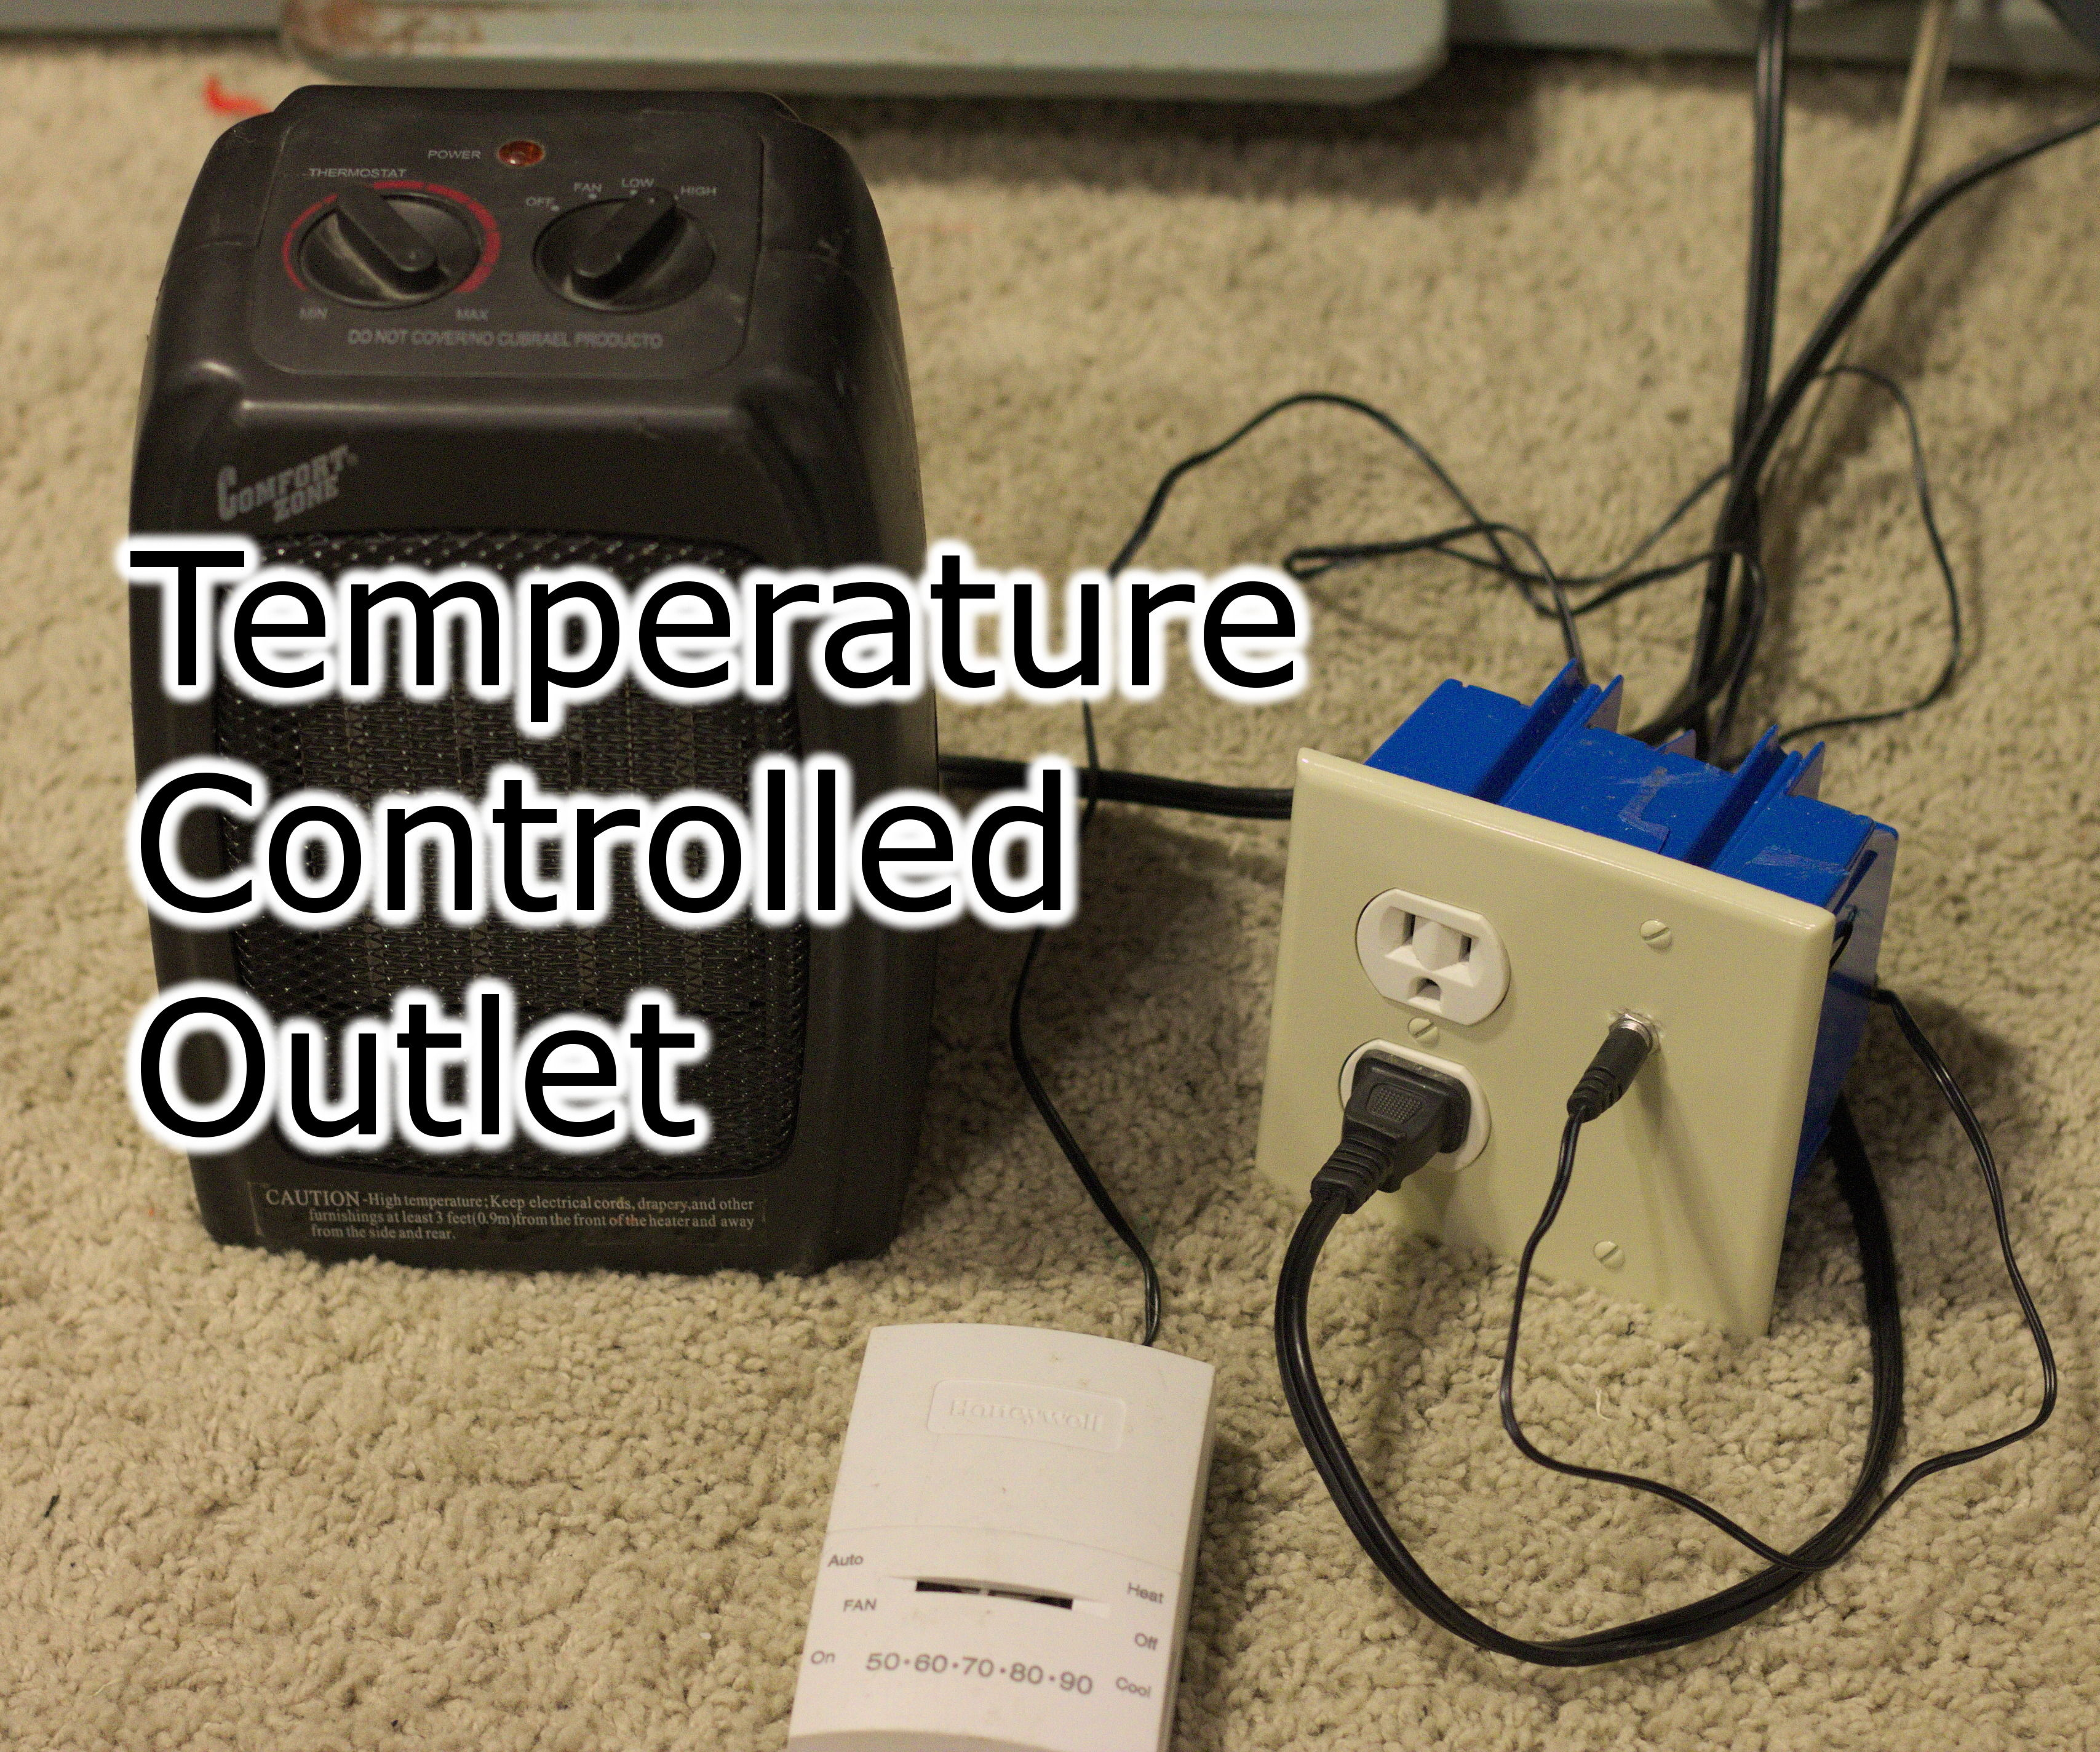 Wiring A Thermostat To An Outlet Diagram Essig House Power Controlled 9 Steps With Pictures Diagrams